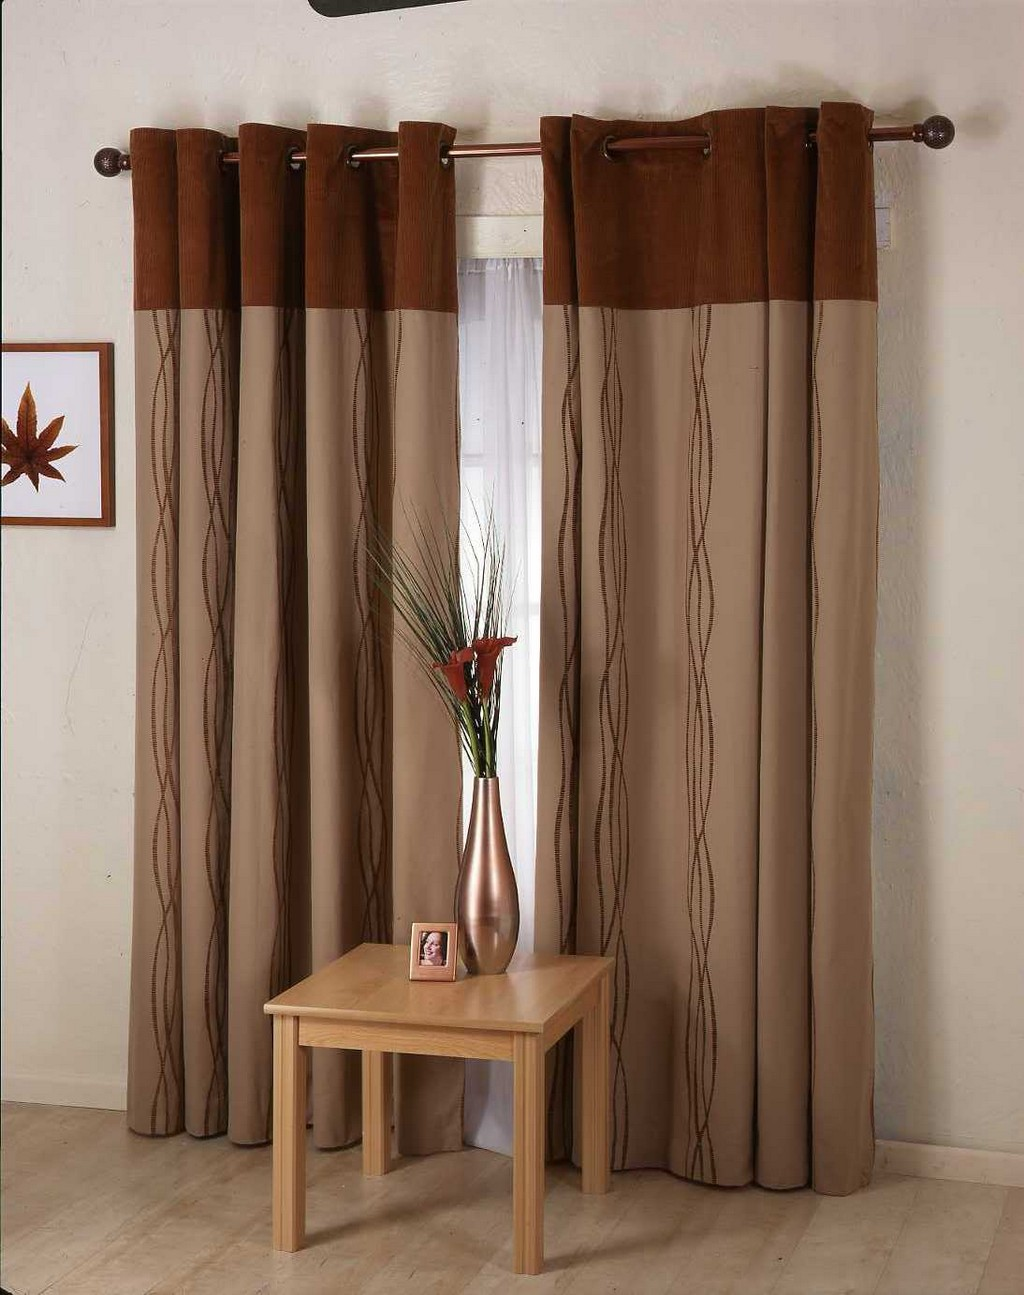 how to buy curtains for a small window, sliding patio door window curtains, air curtain, discounted kitchen curtains